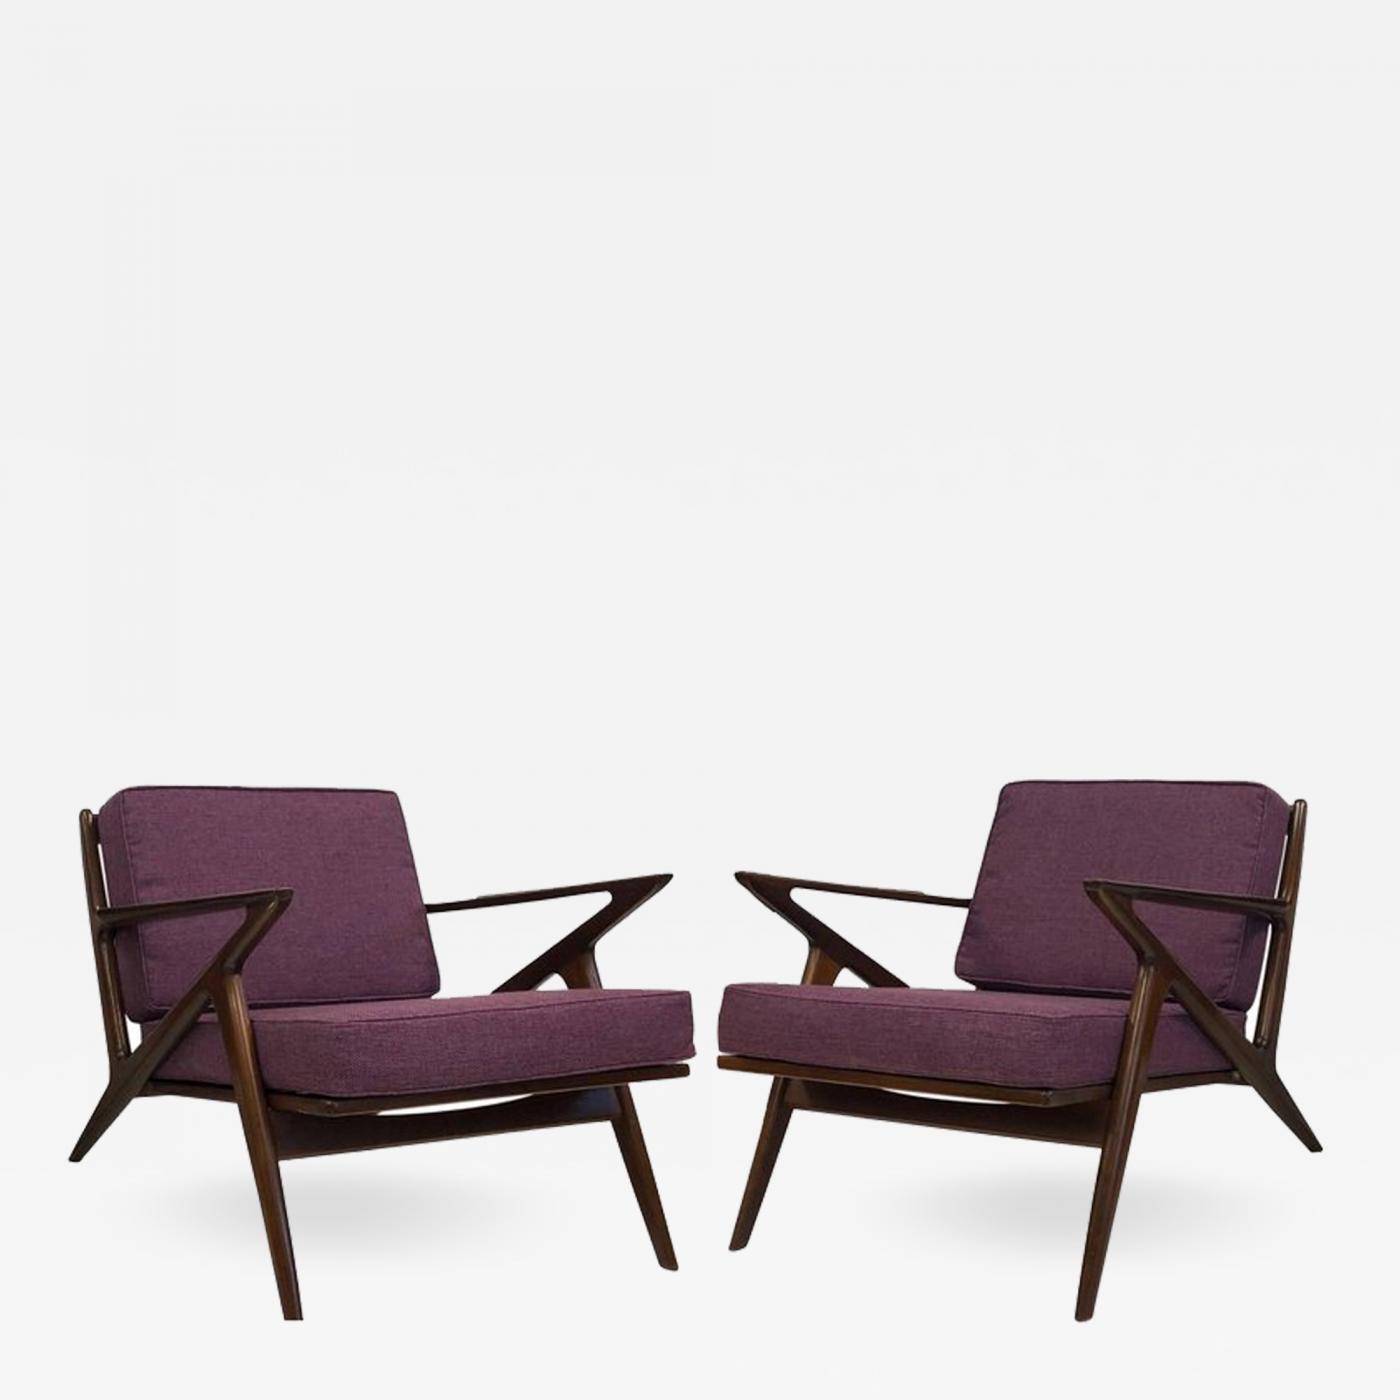 Ordinaire ... Chairs By Poul Jensen For Selig. Tap To Expand